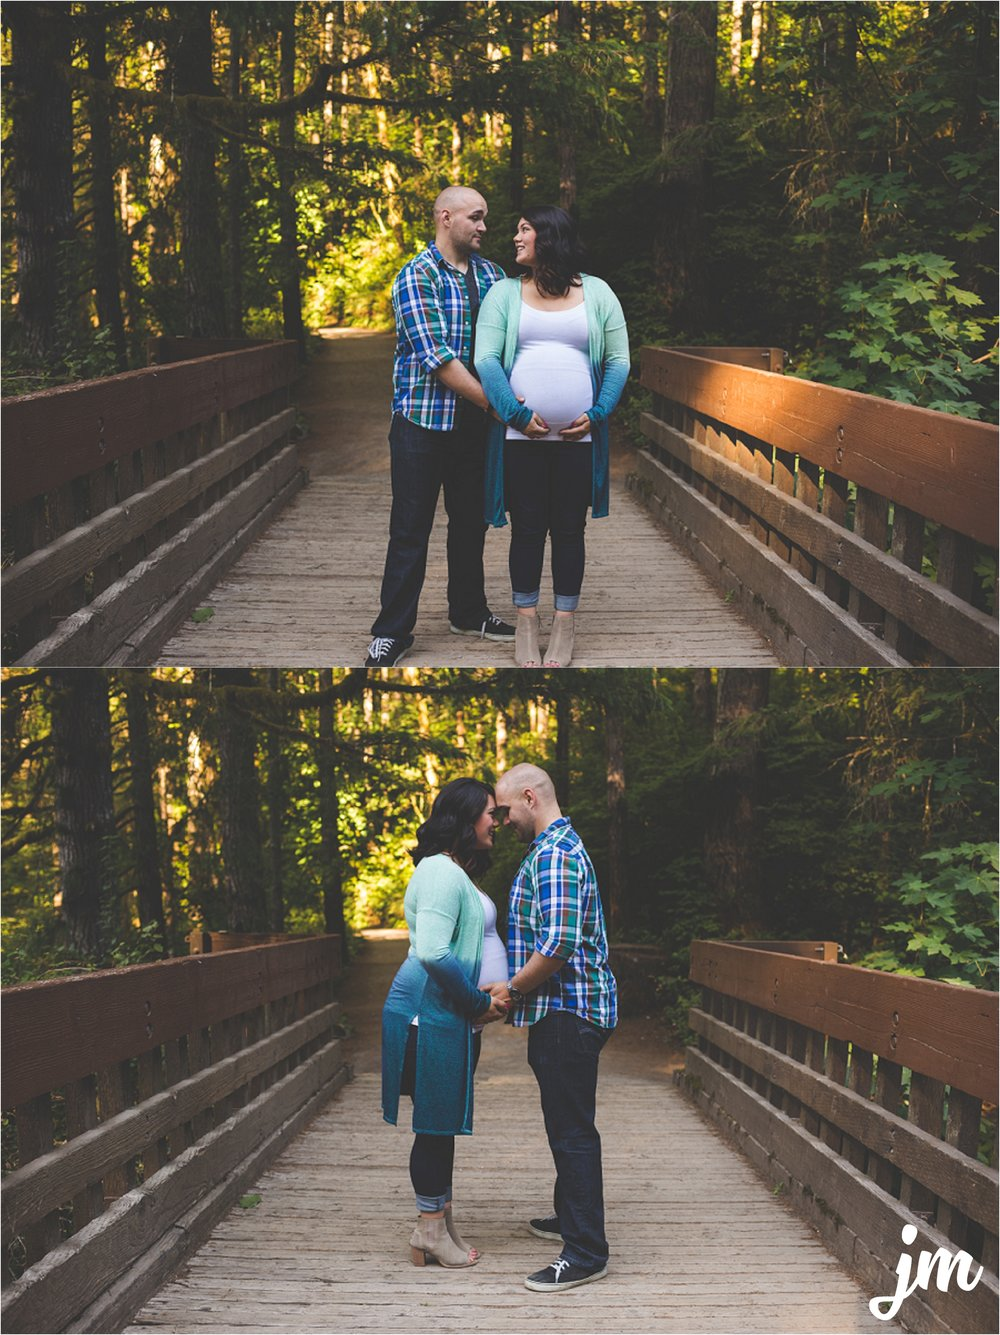 jannicka-mayte-moulton-falls-park-maternity-session-pacific-northwest-lifestyle-photographer_0012.jpg